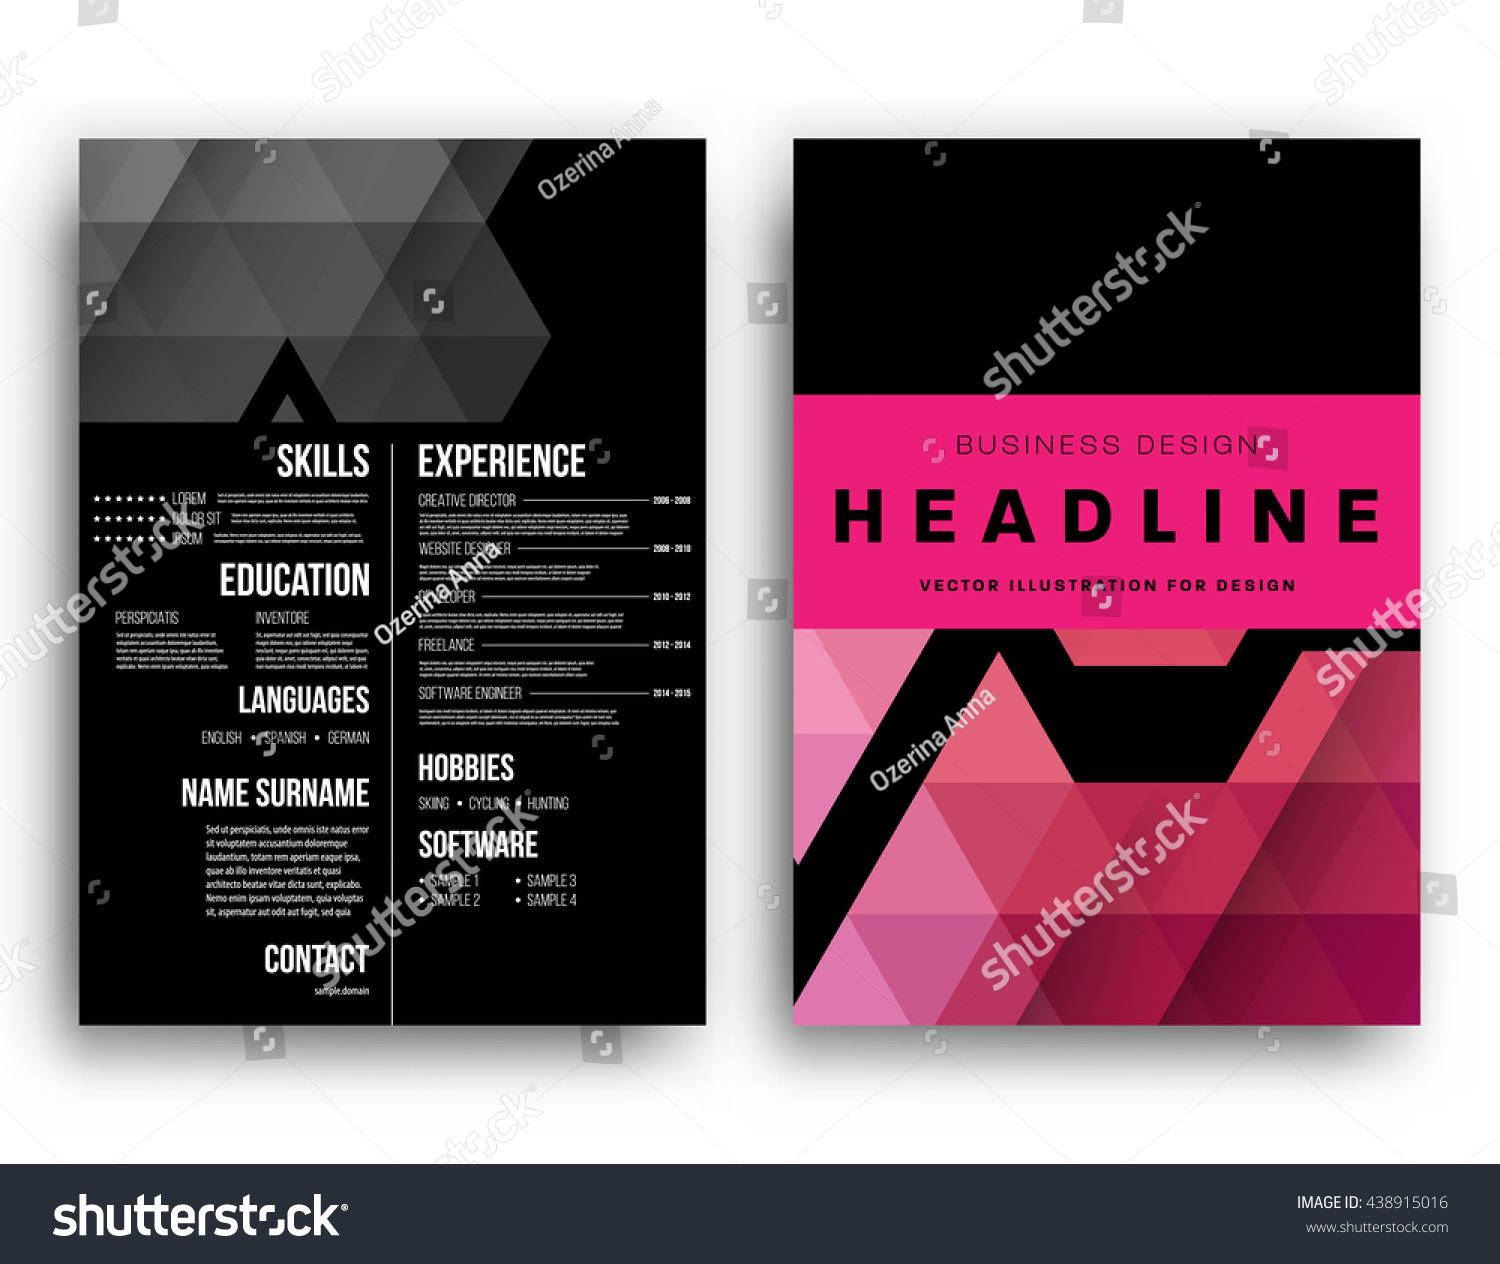 Abstract Background Geometric Shapes Frames Presentation Stock ...